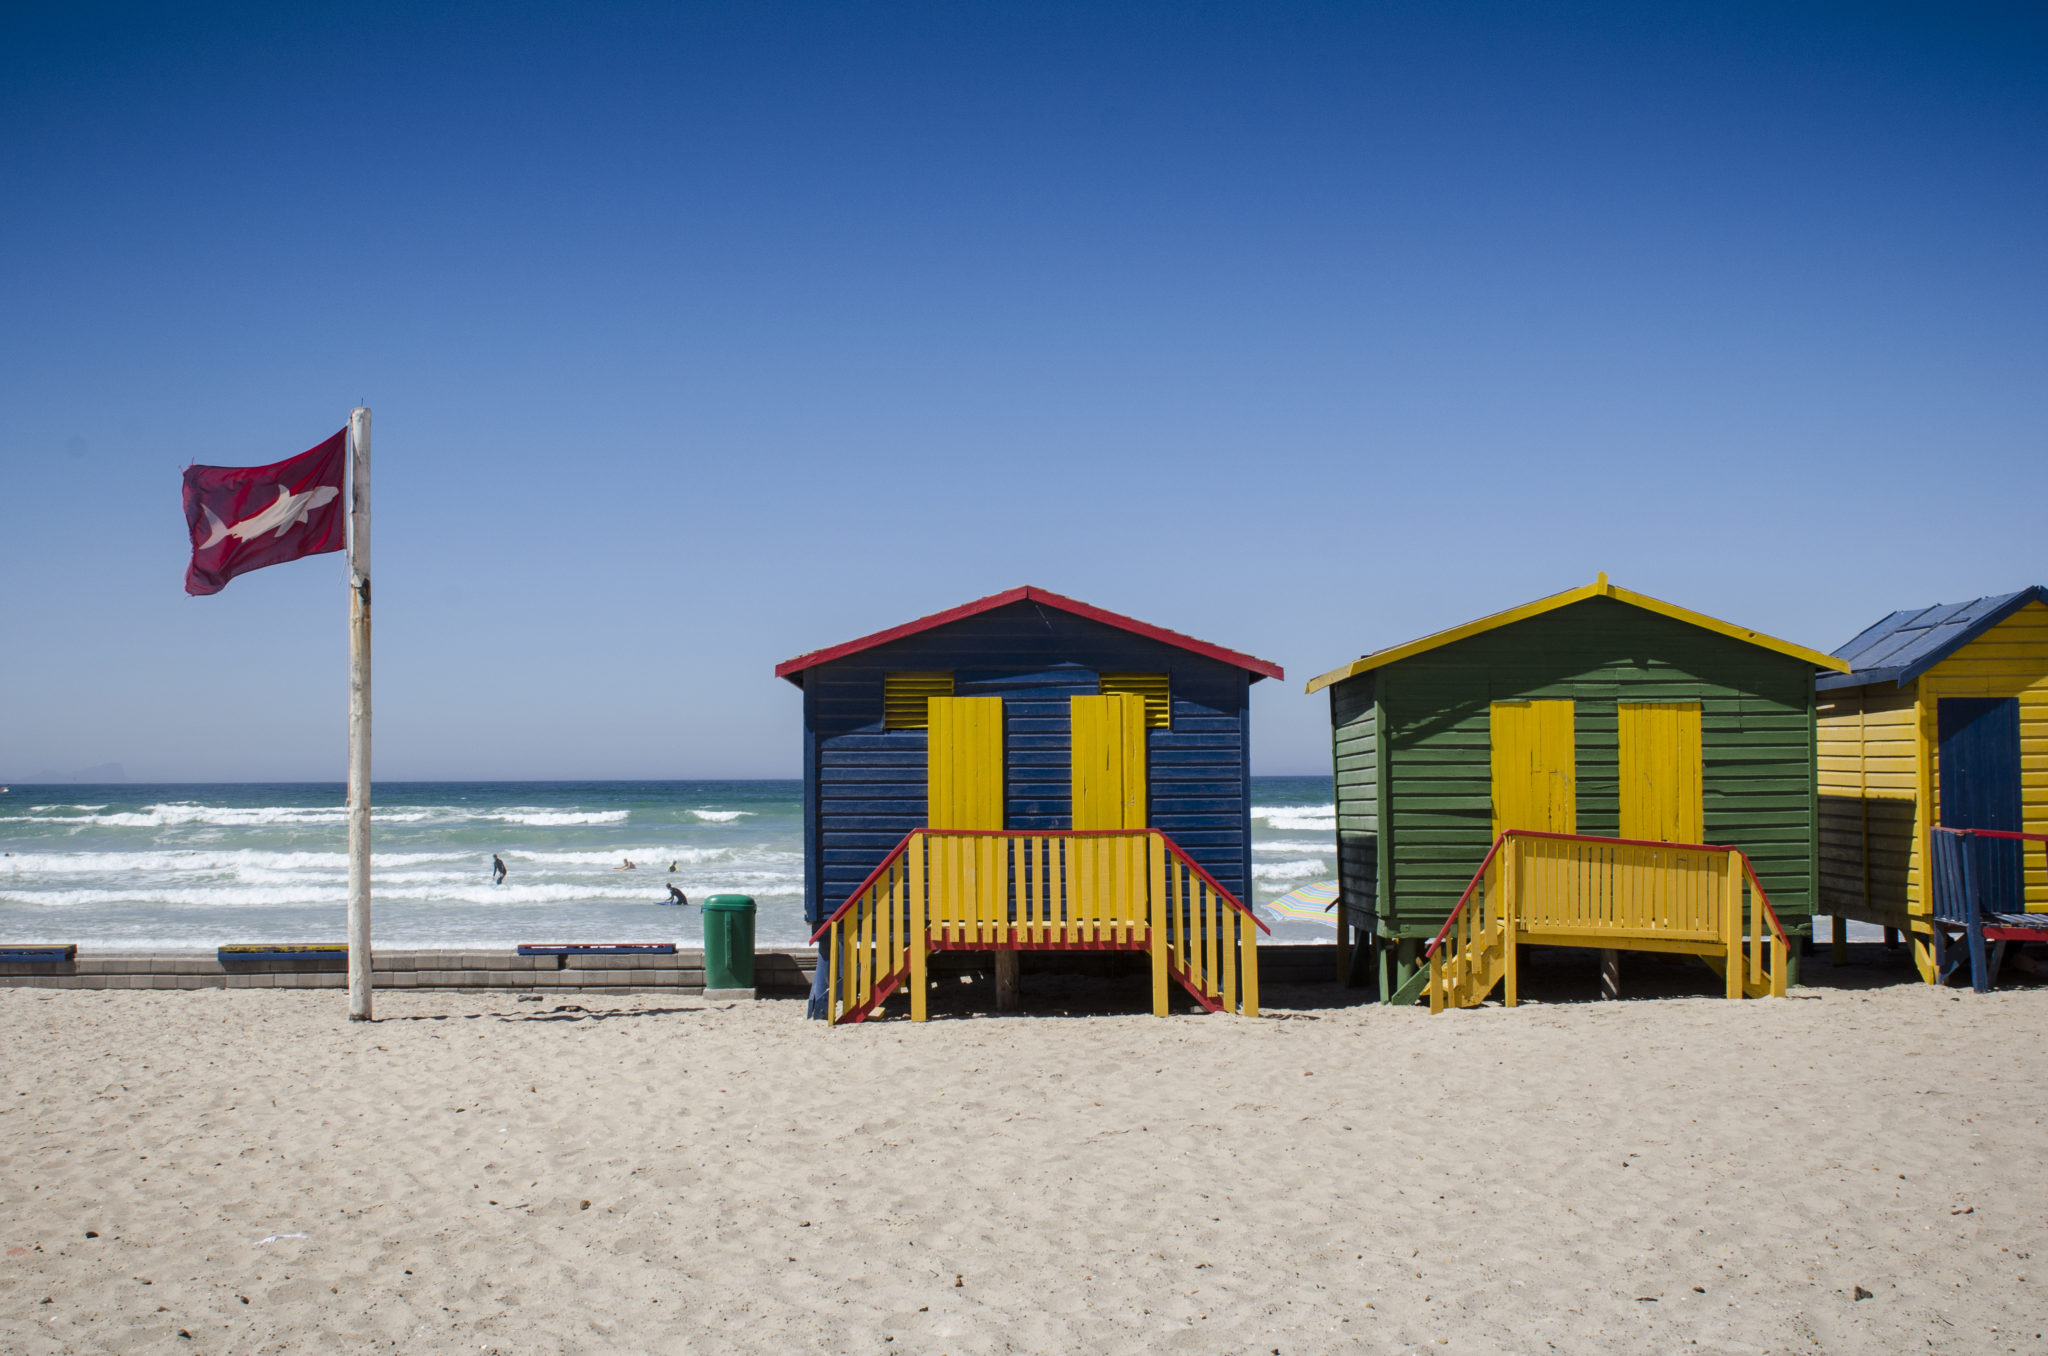 Suedafrika-Backpacking-Muizenberg-Beach-Bunte-Haeuser